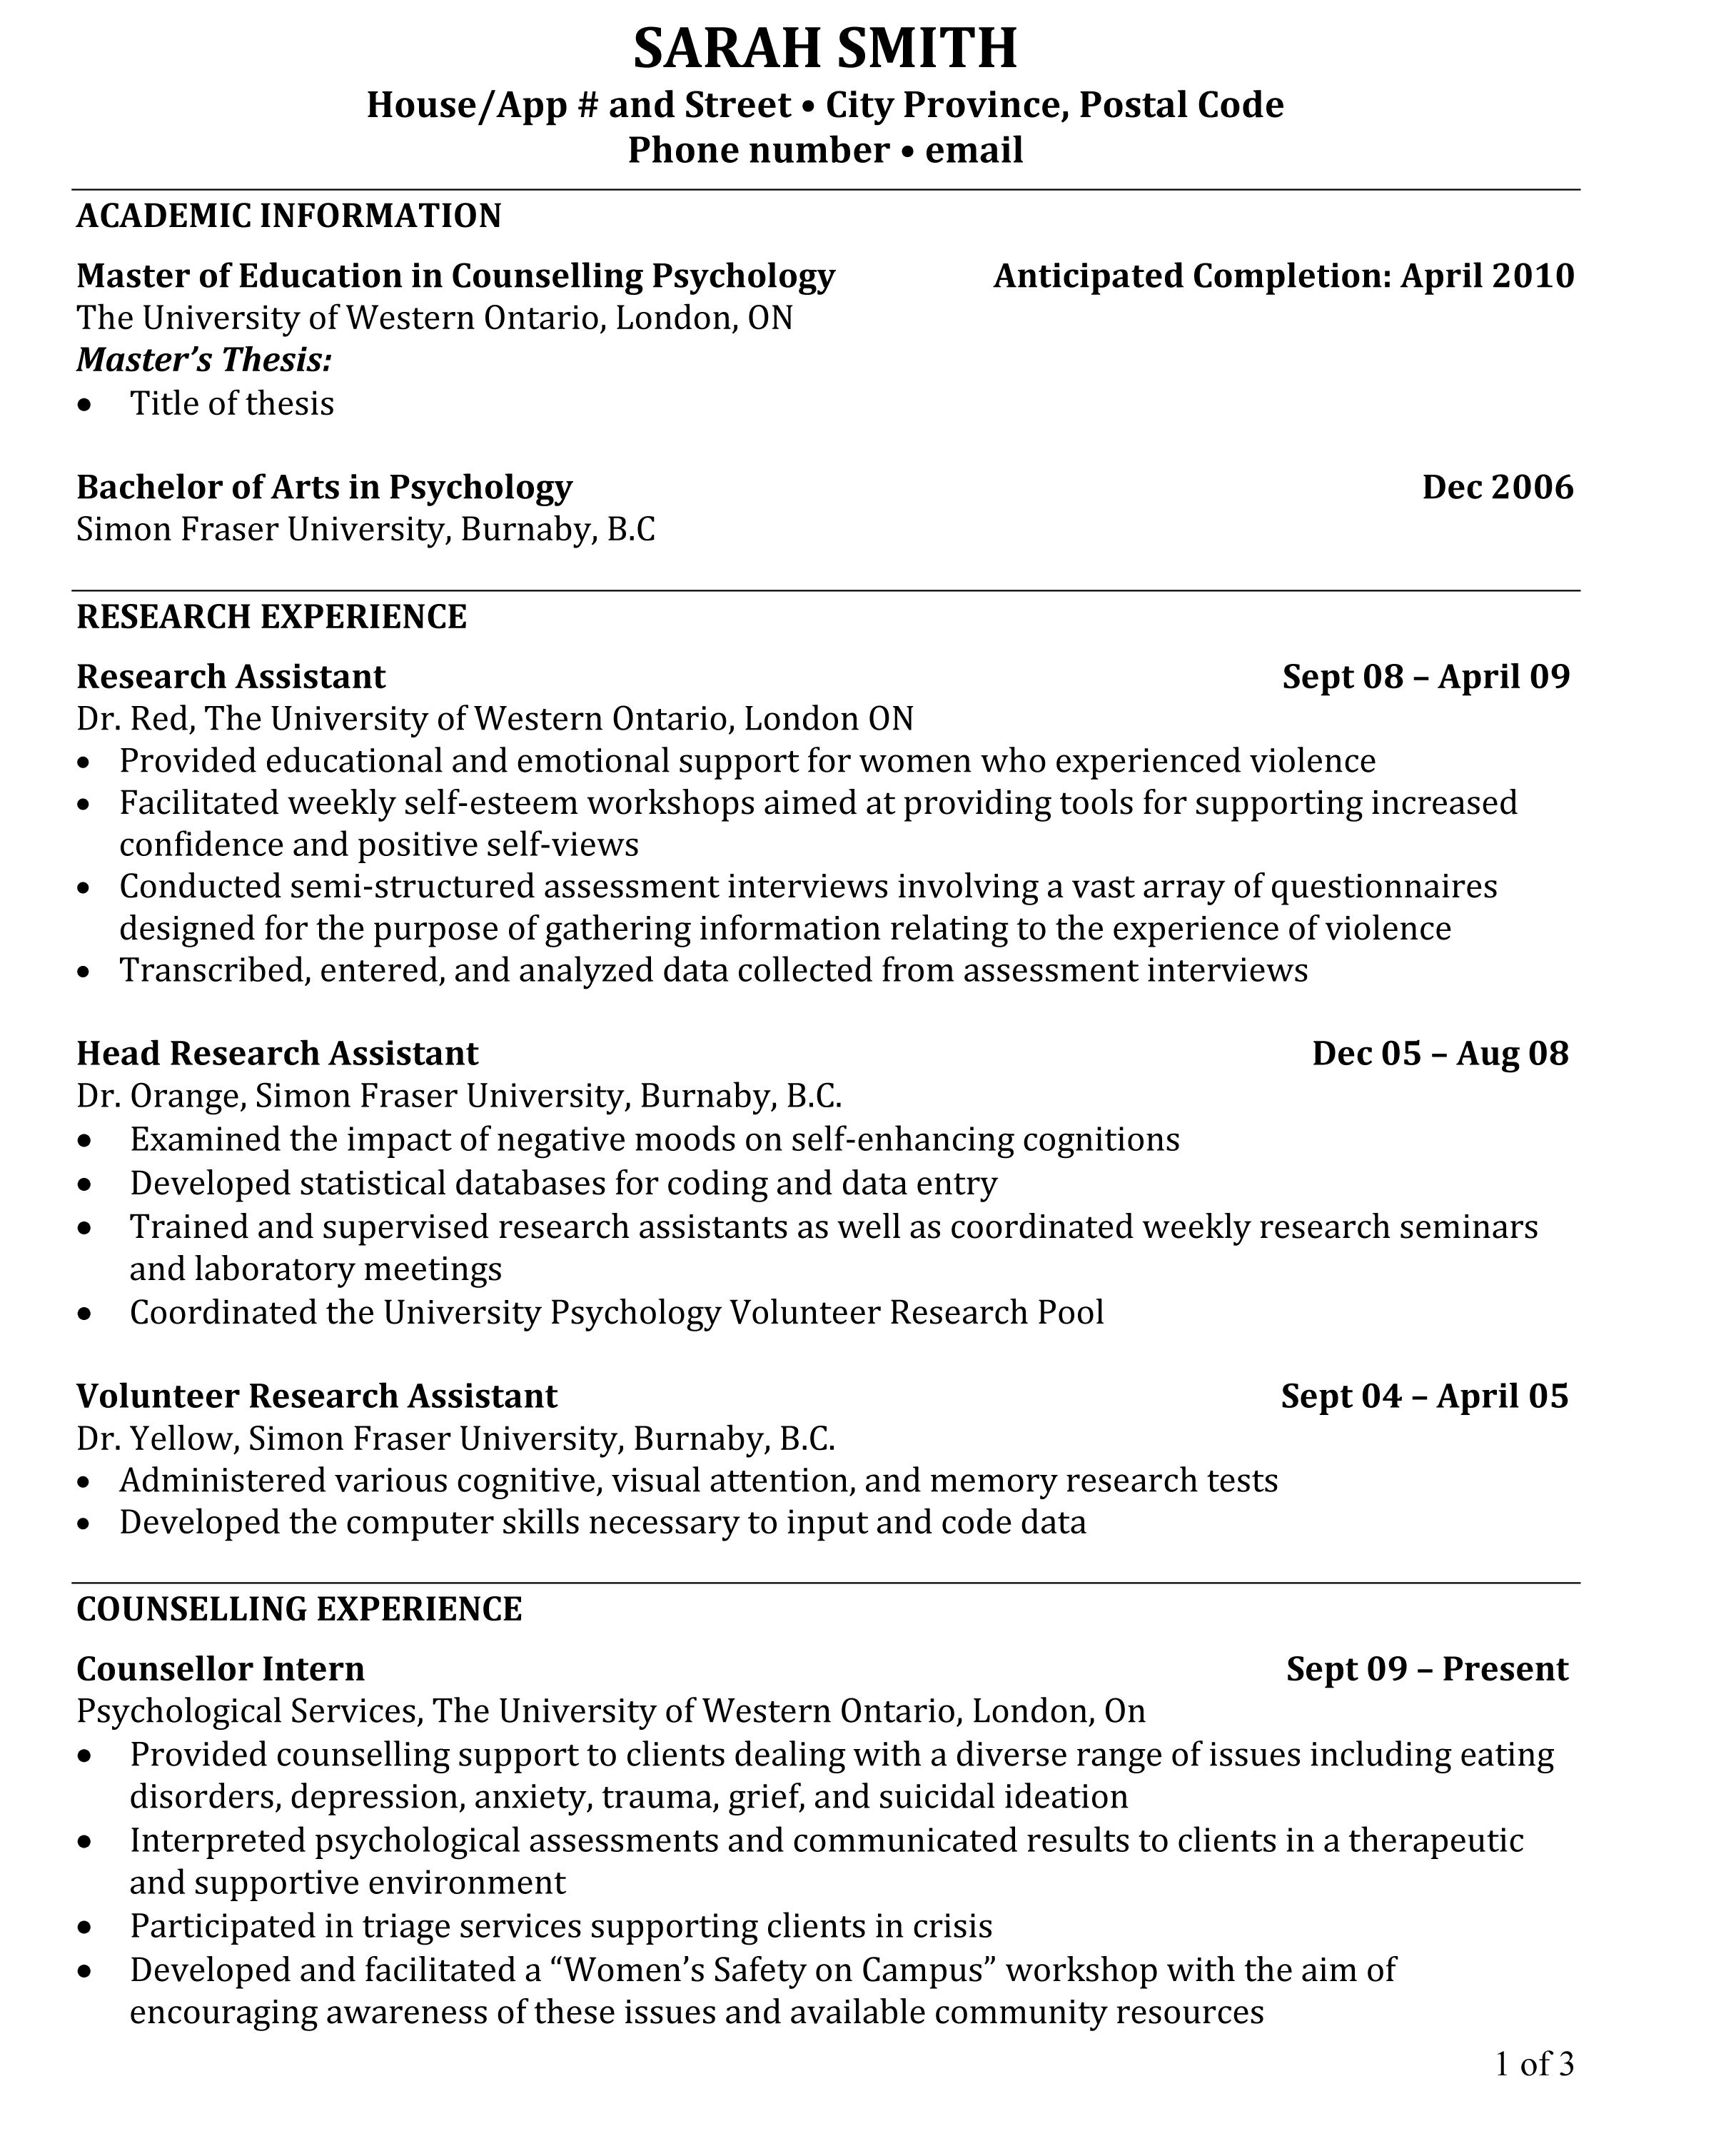 Academic cv template phd idealstalist academic cv template phd yelopaper Images